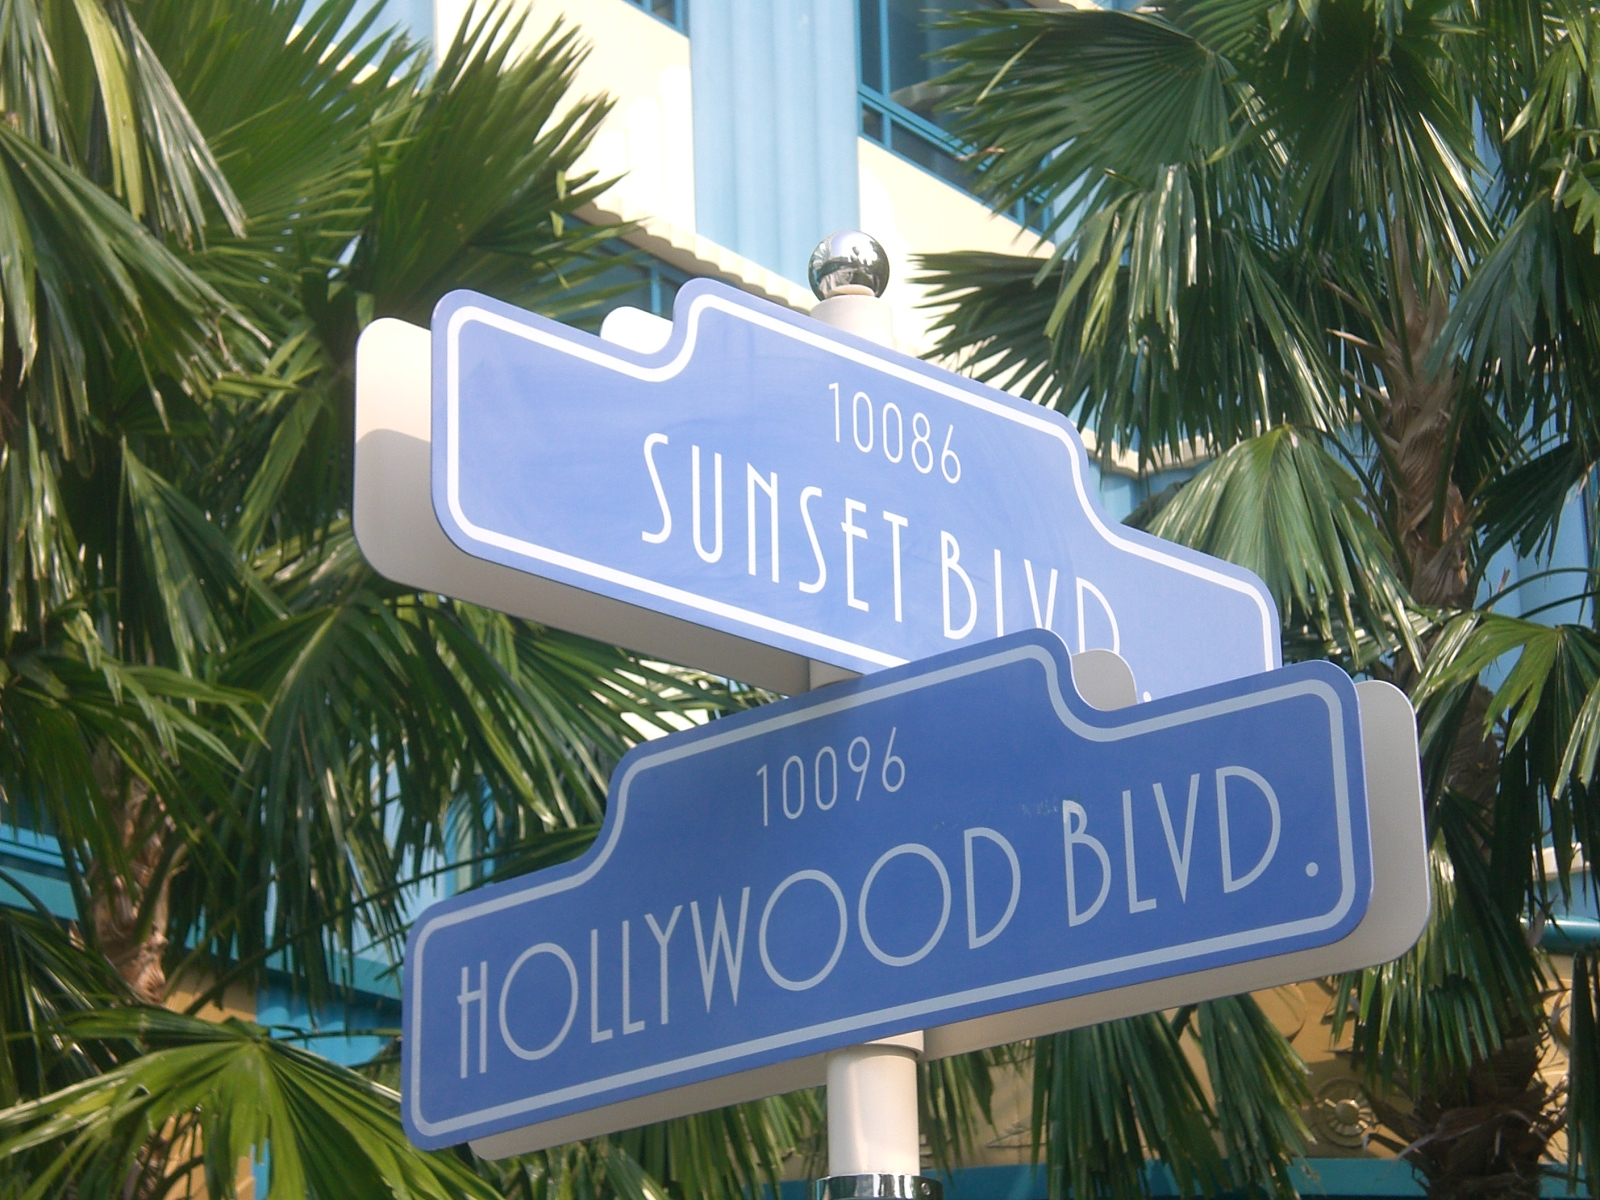 Hollywood Hills Sunset File:HK Disney's Holly...